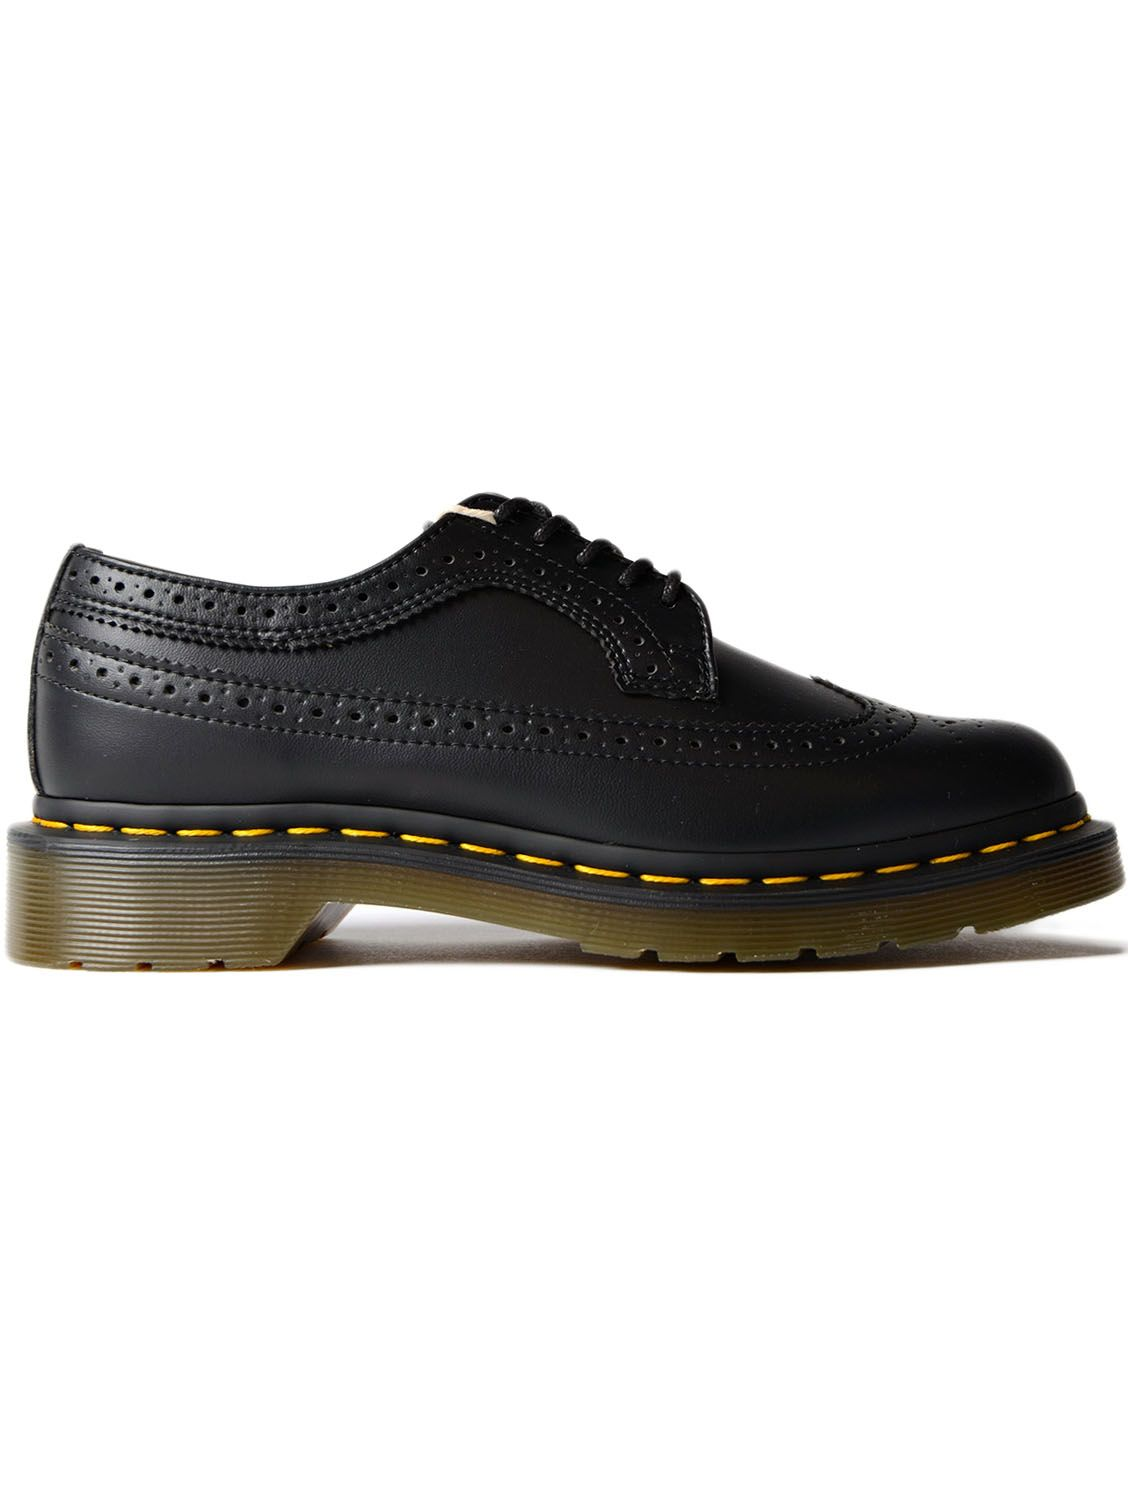 Dr. Martens Vegan Derby Shoes